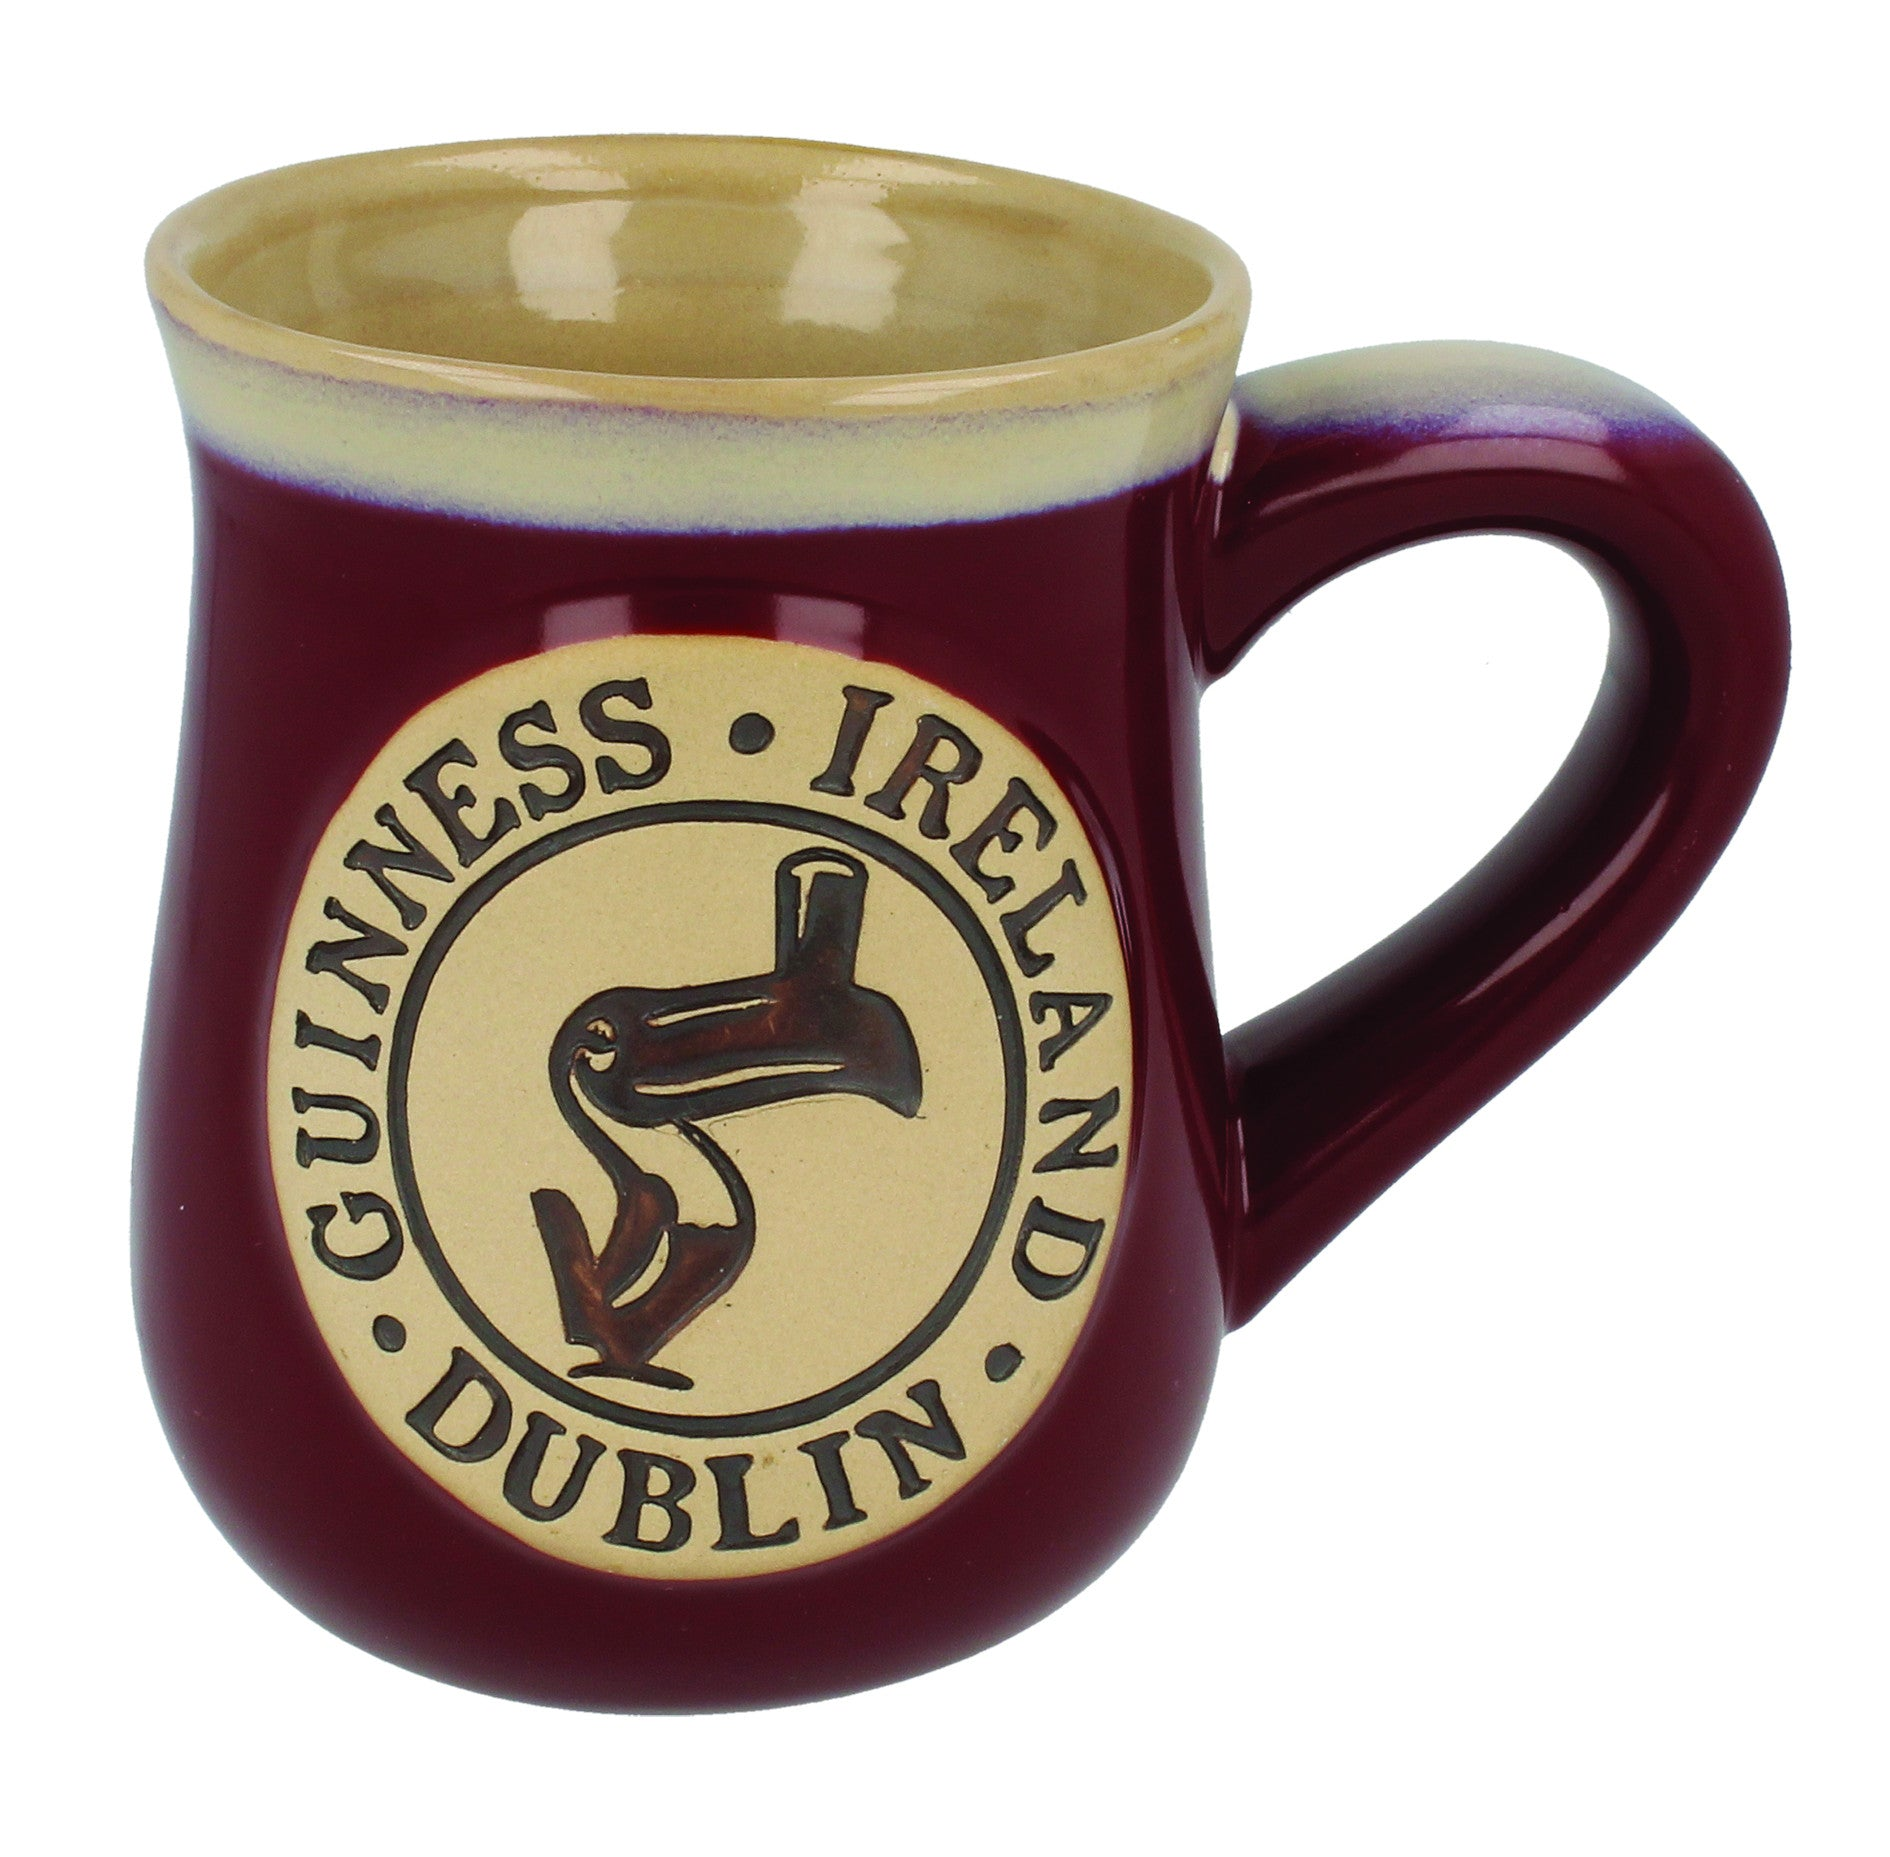 Guinness Pottery Mug, Toucan design, Burgundy Red